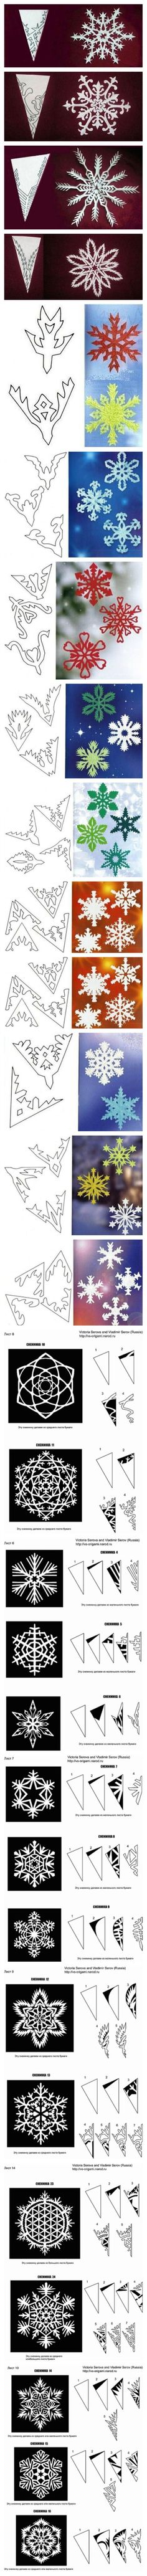 Best paper snowflakes ever!